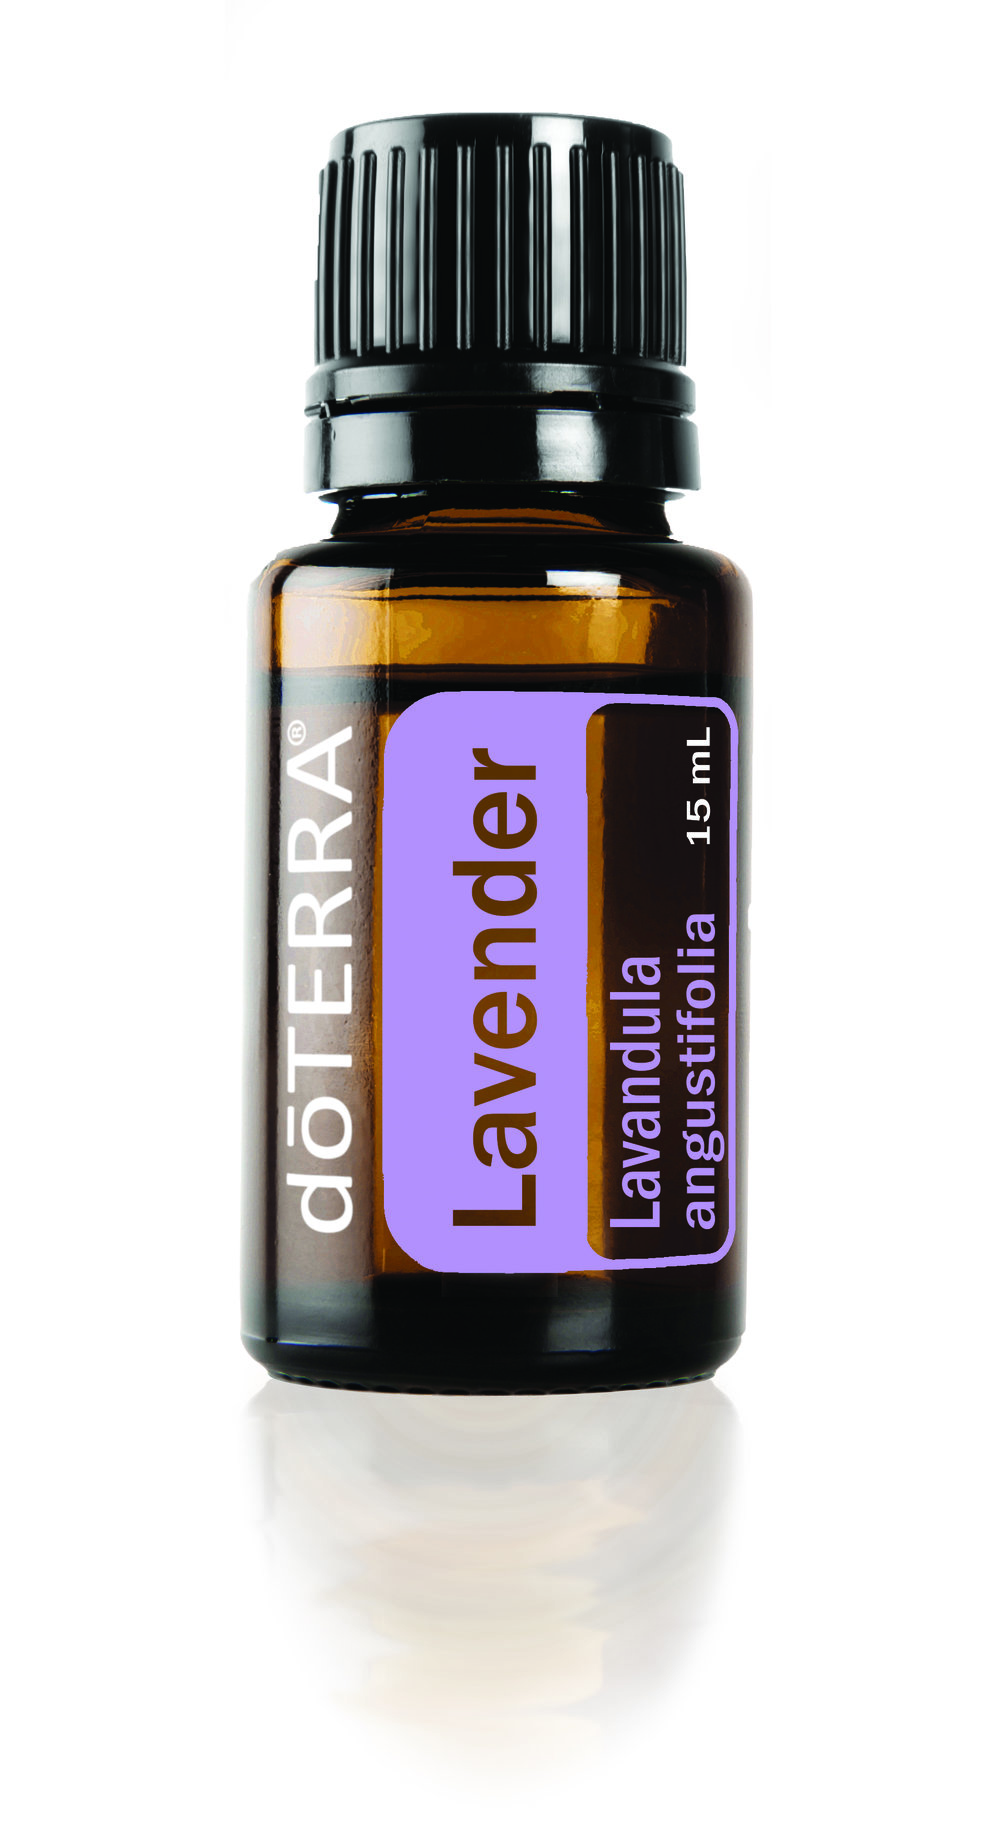 100% Certified Pure Therapeutic Grade Lavender Essential Oil $28.00 Retail, $21.00 Wholesale (15mL=about 250 drops/doses) • Widely used for its calming and relaxing qualities* • Soothes occasional skin irritations • Eases feelings of muscle tension